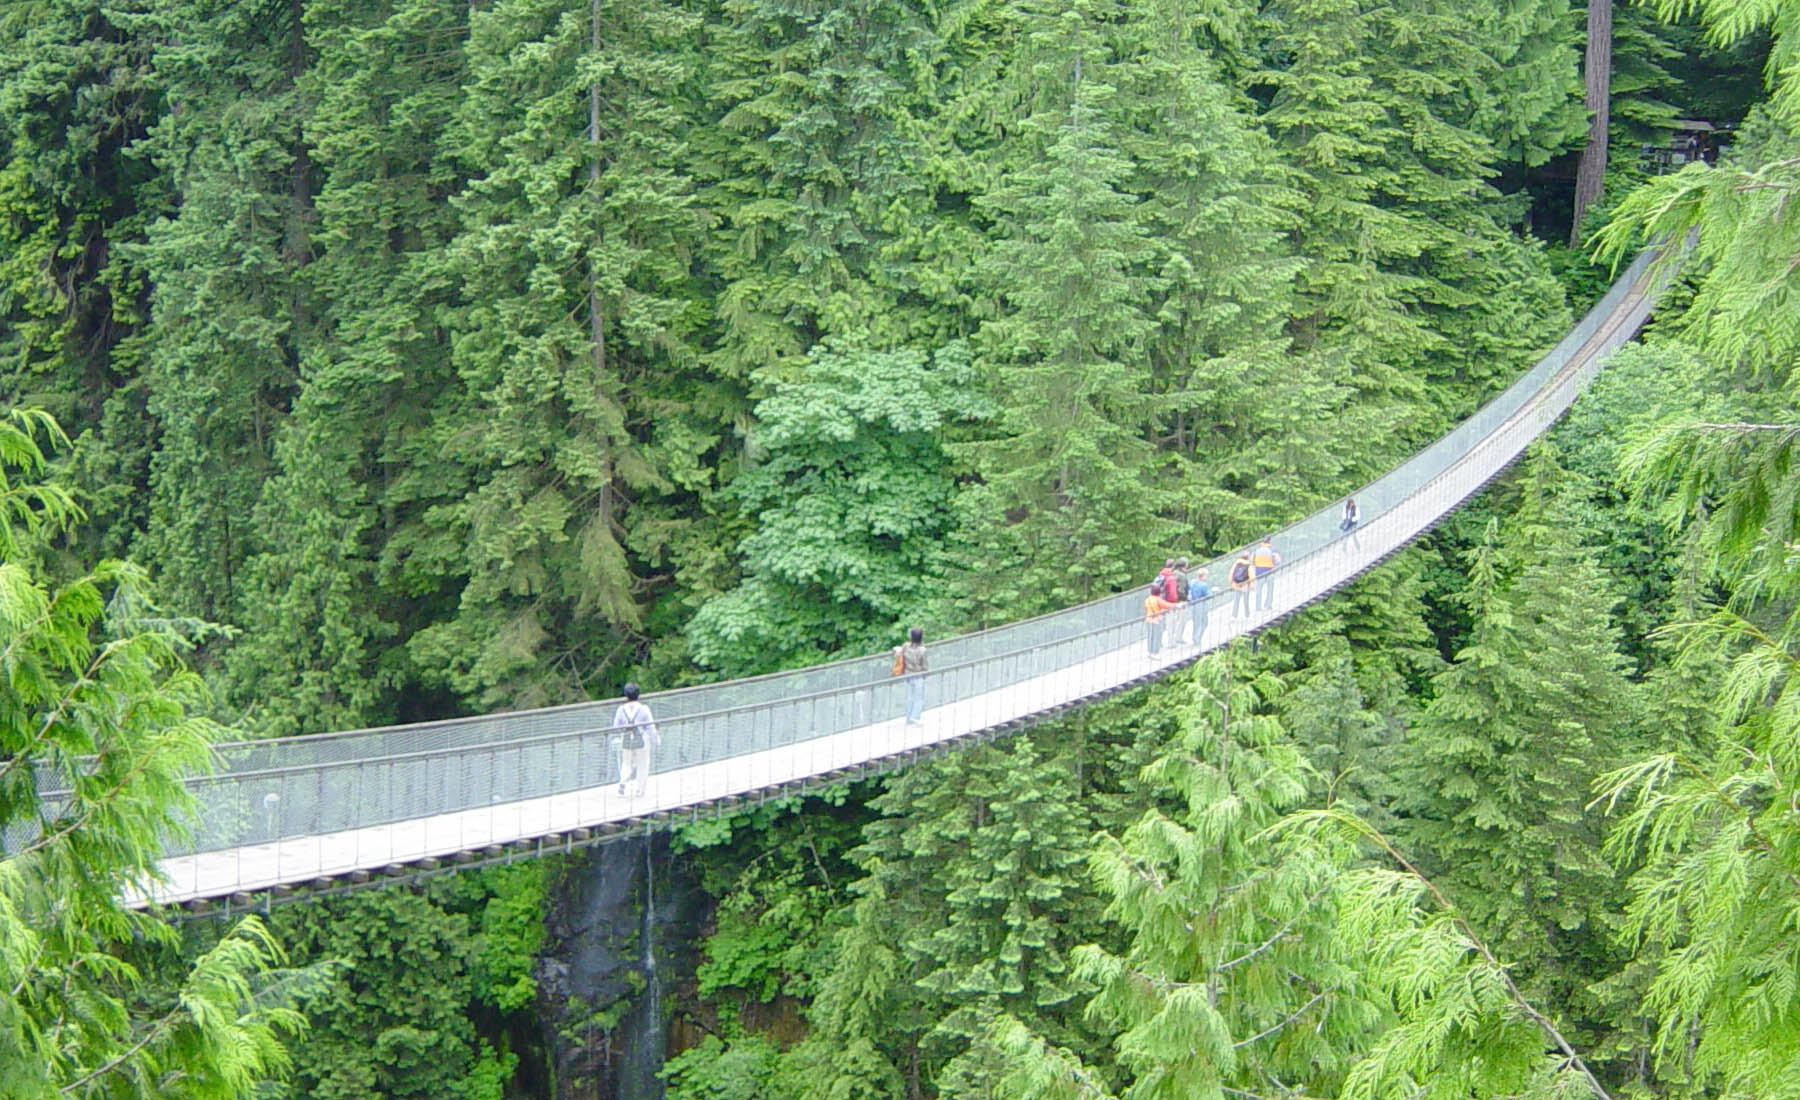 https://upload.wikimedia.org/wikipedia/commons/f/f4/CapilanoBridge.jpg